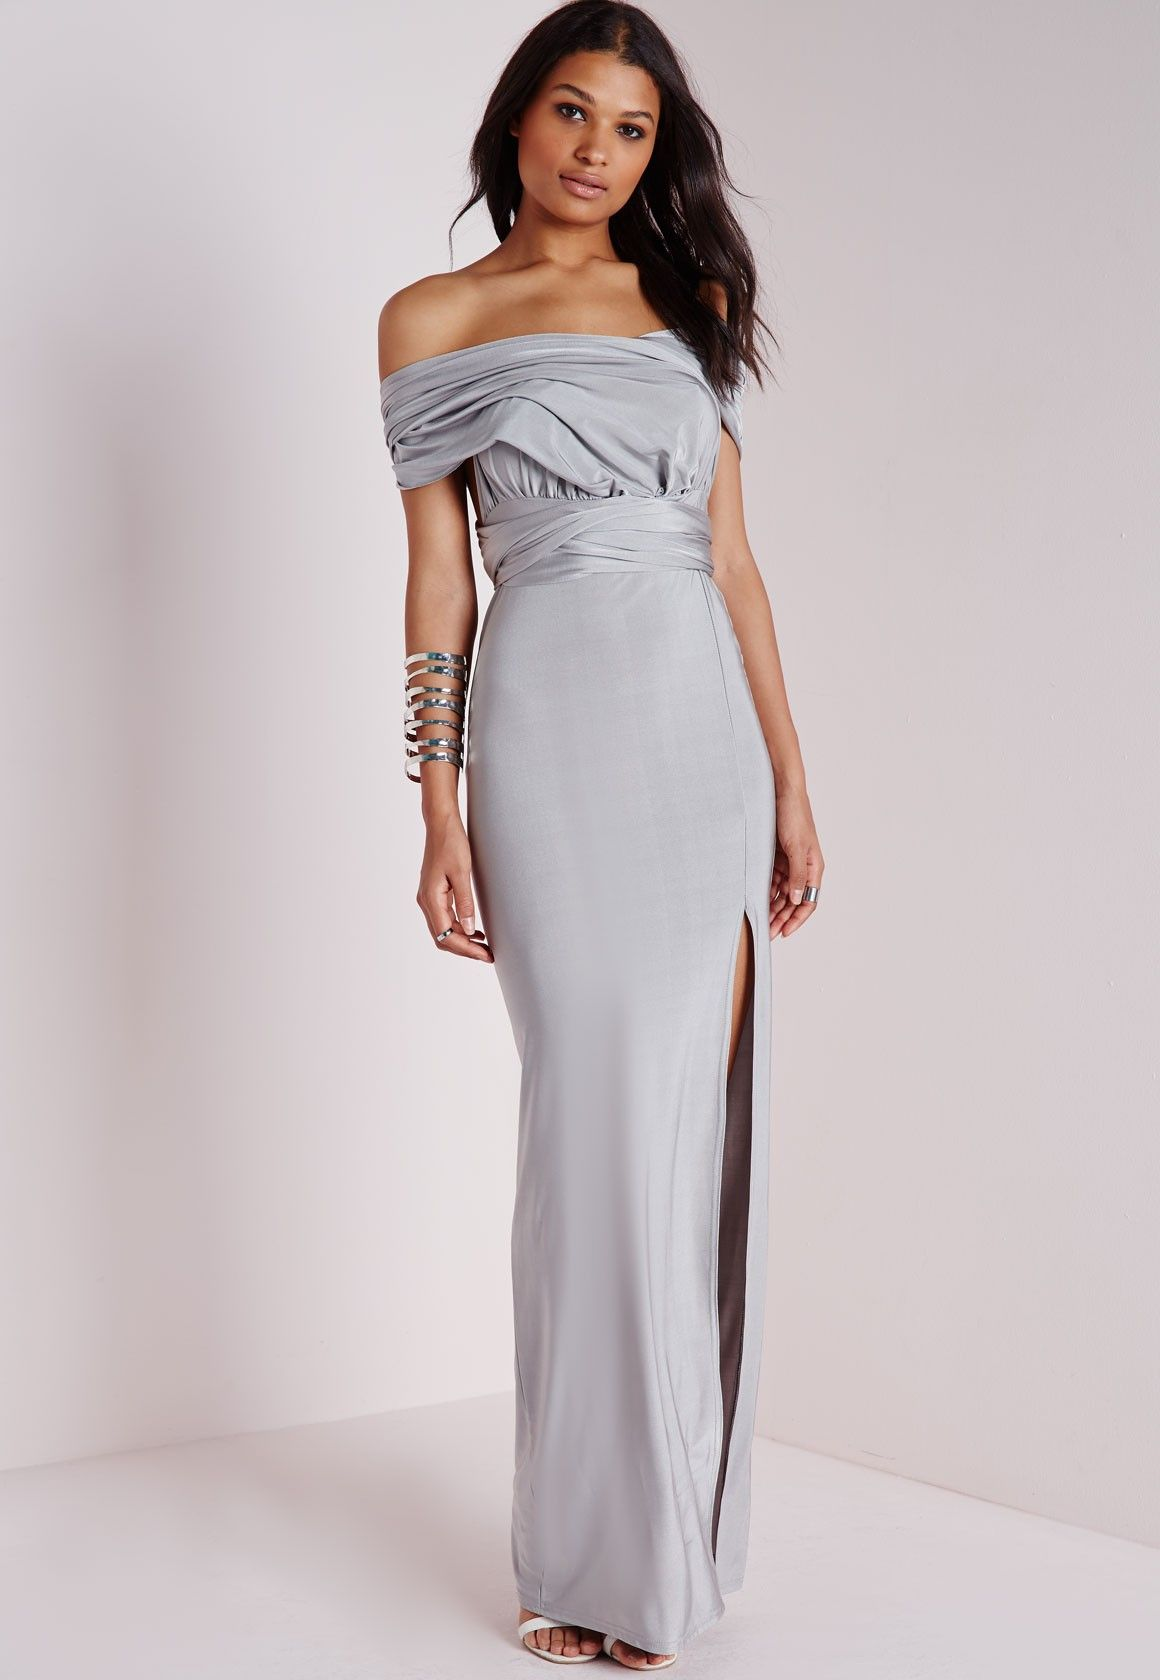 e82bd7d977a Missguided - Do It Any Way Multiway Slinky Maxi Dress Grey